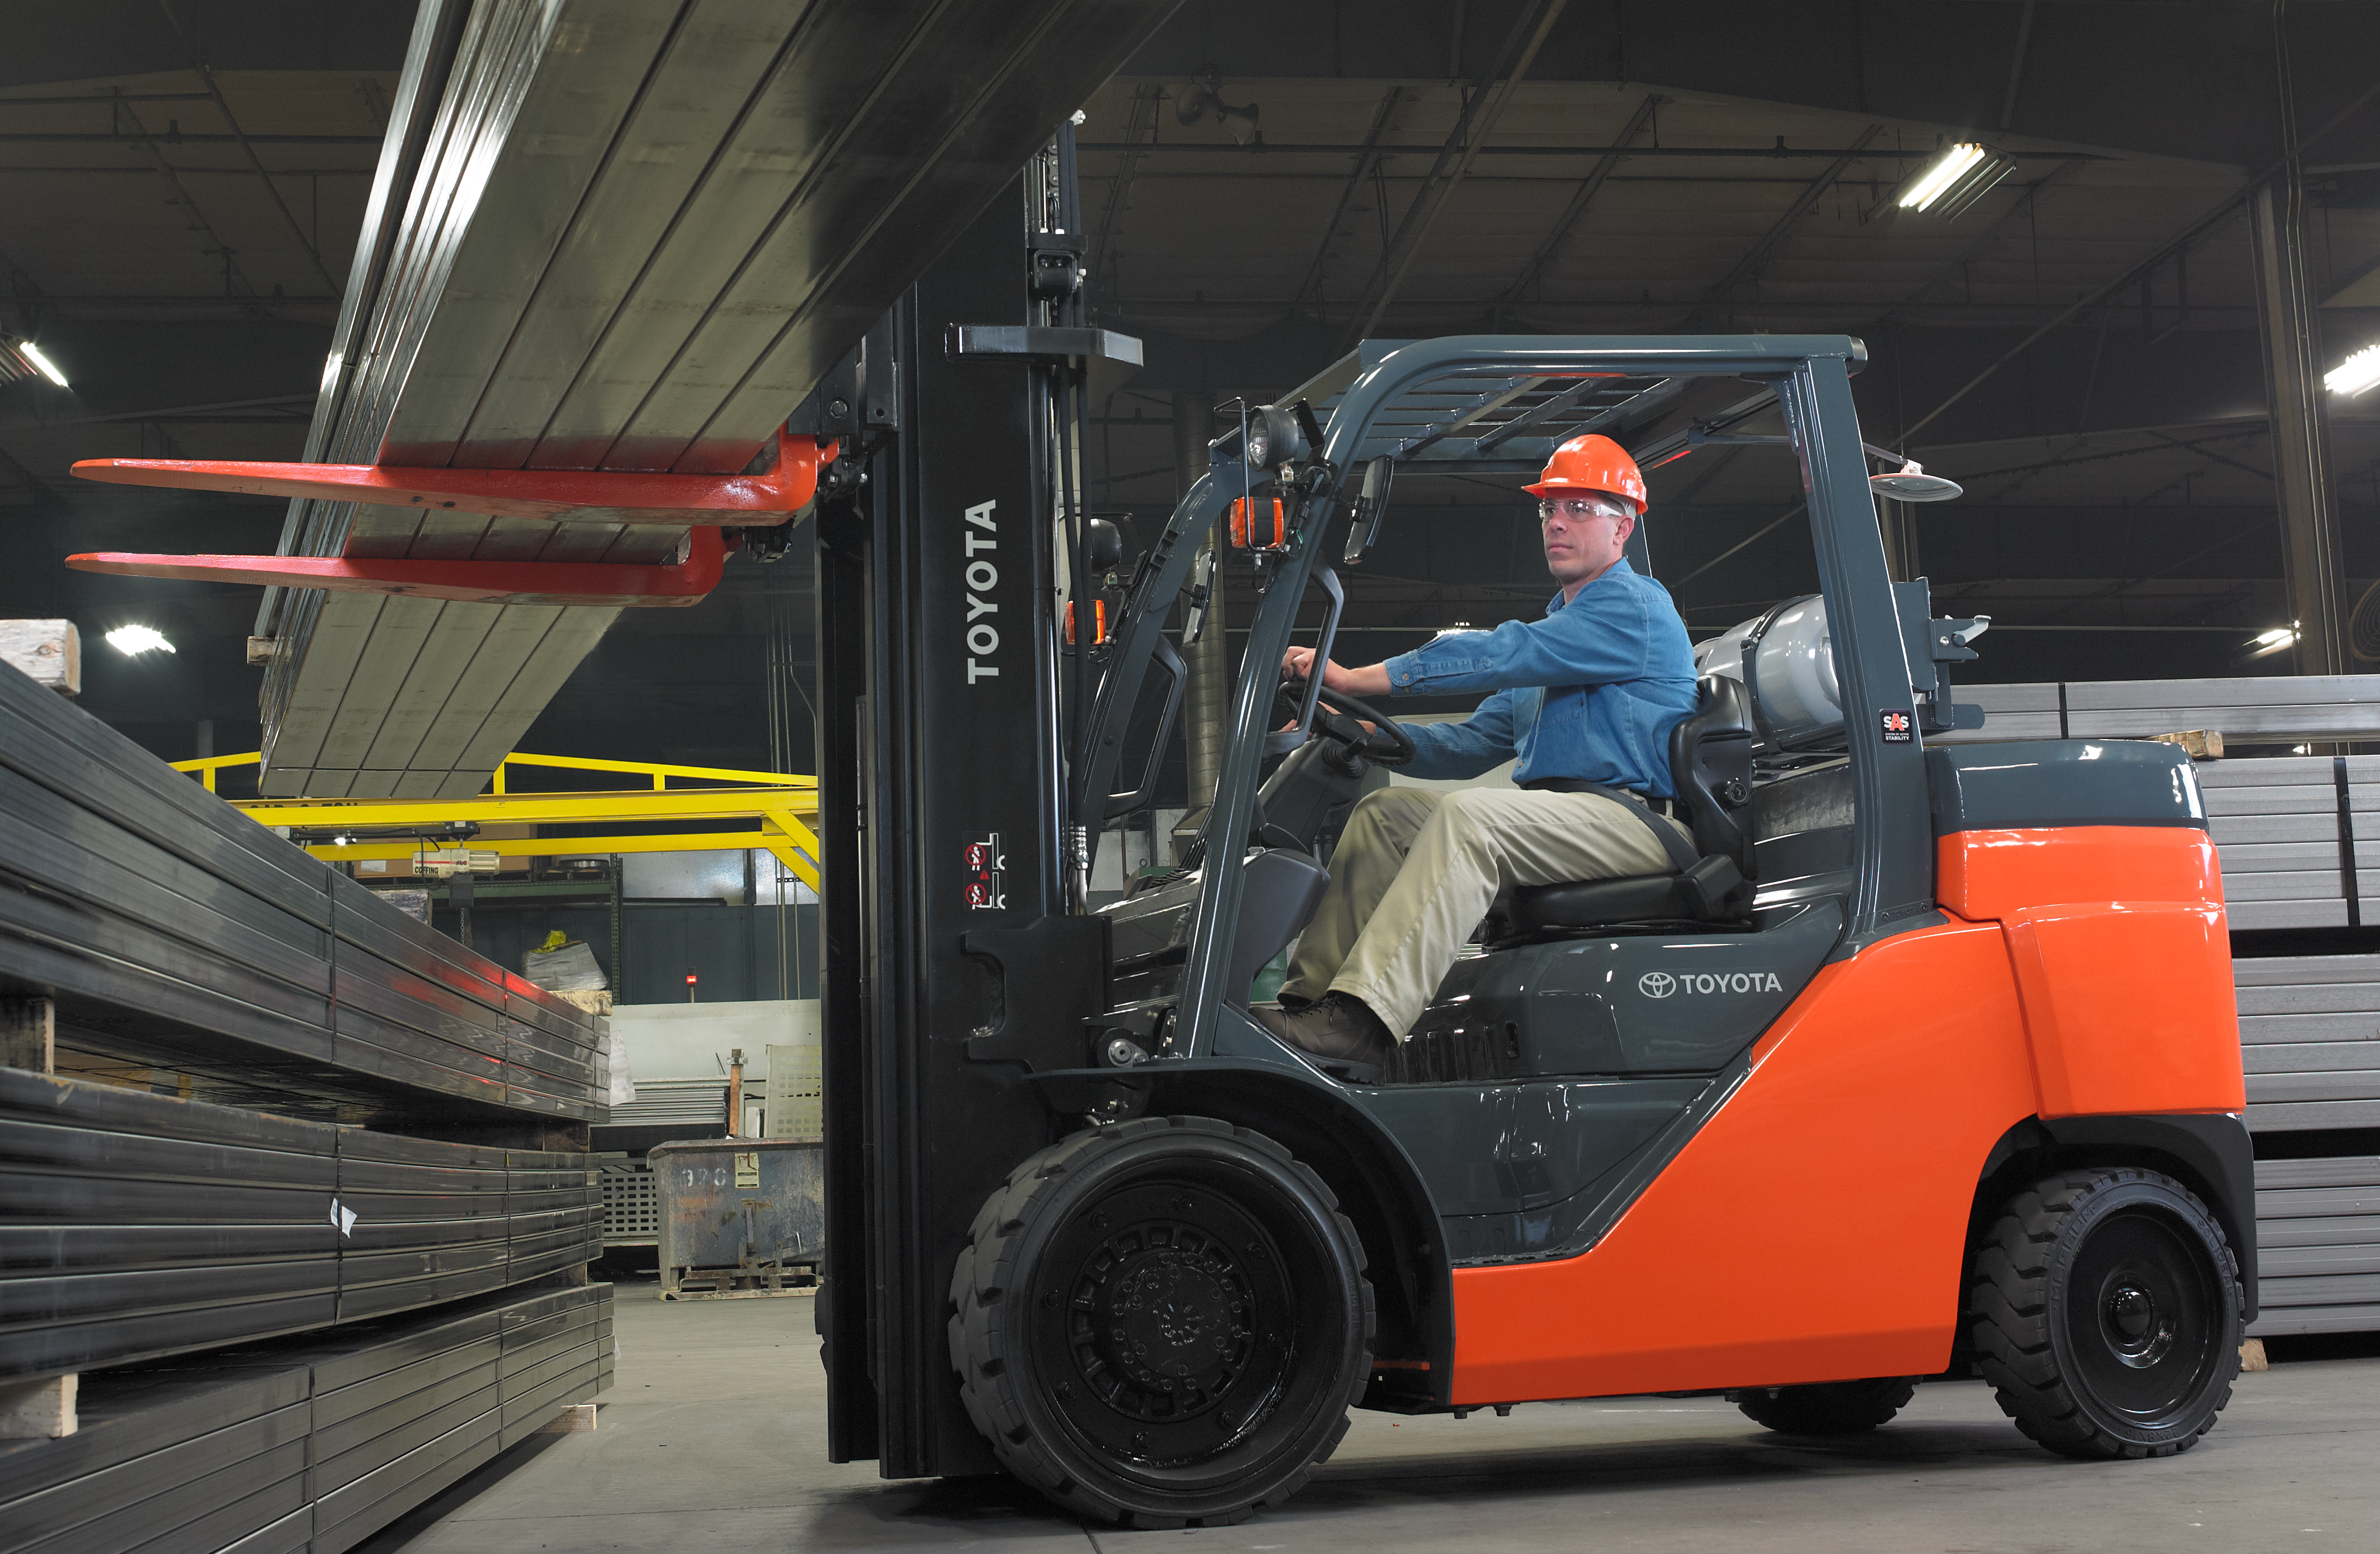 Toyota Large IC Cushion Forklift moving boxes in a warehouse